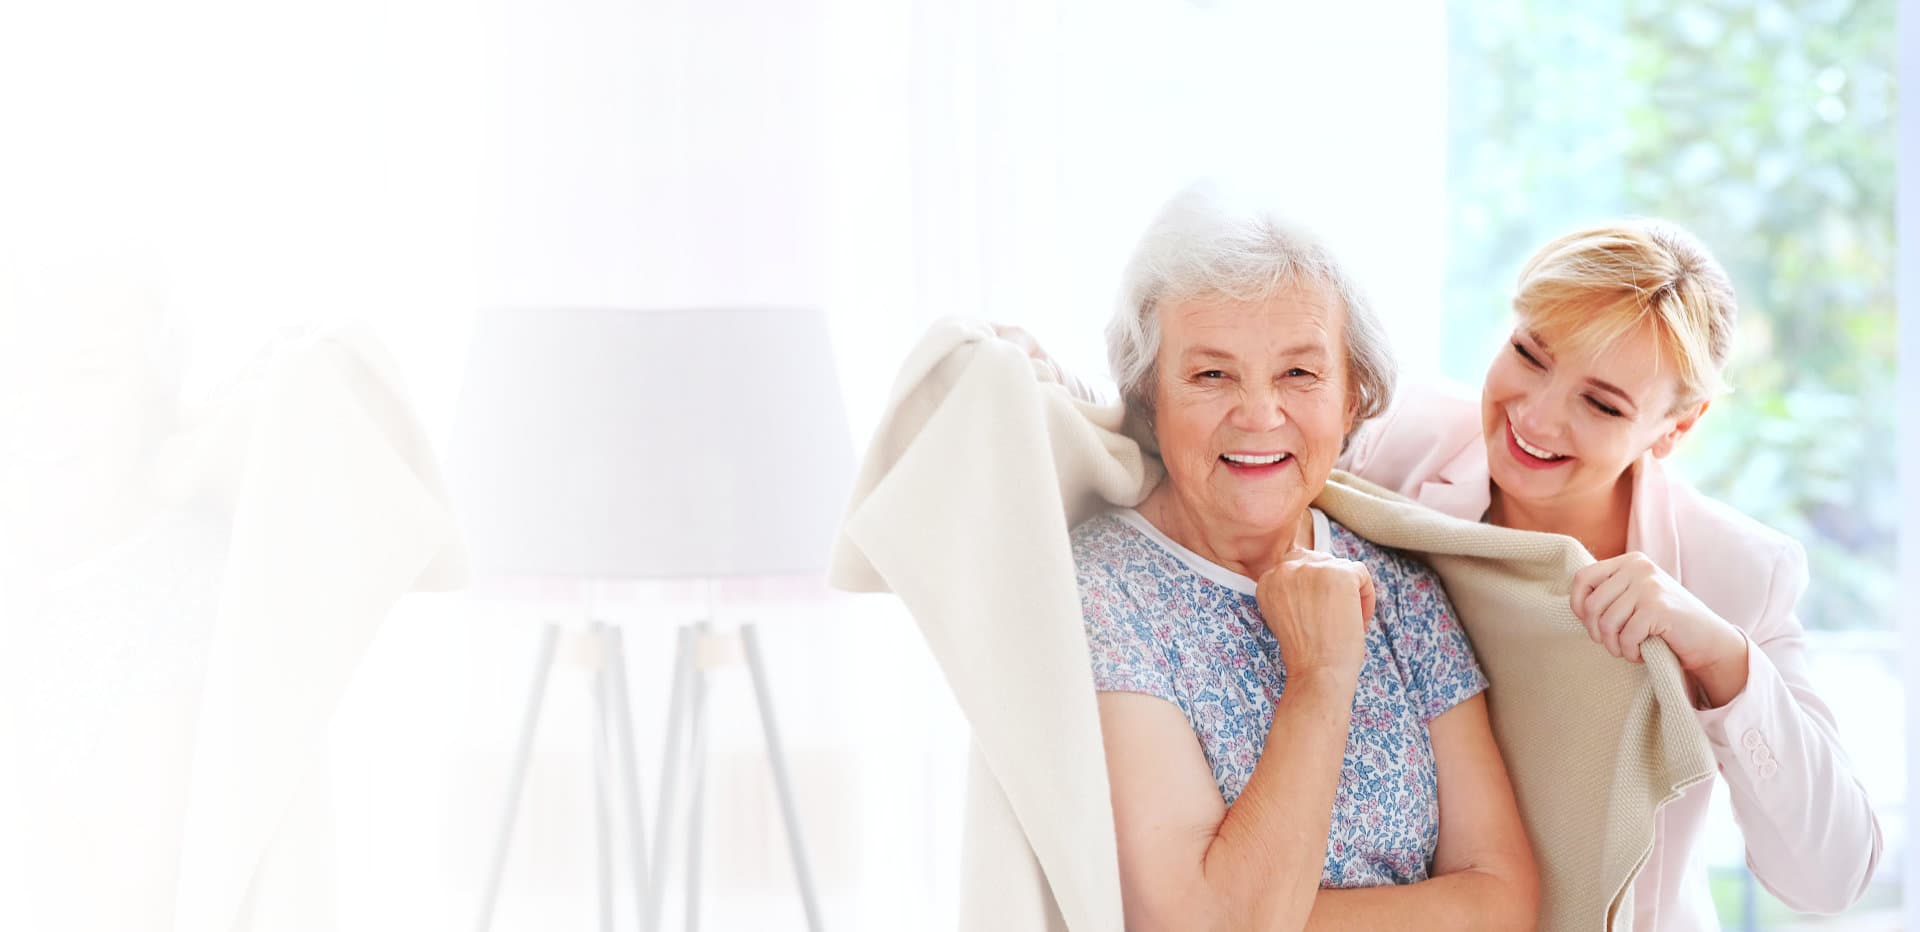 caregiver giving a blanket to senior woman smiling